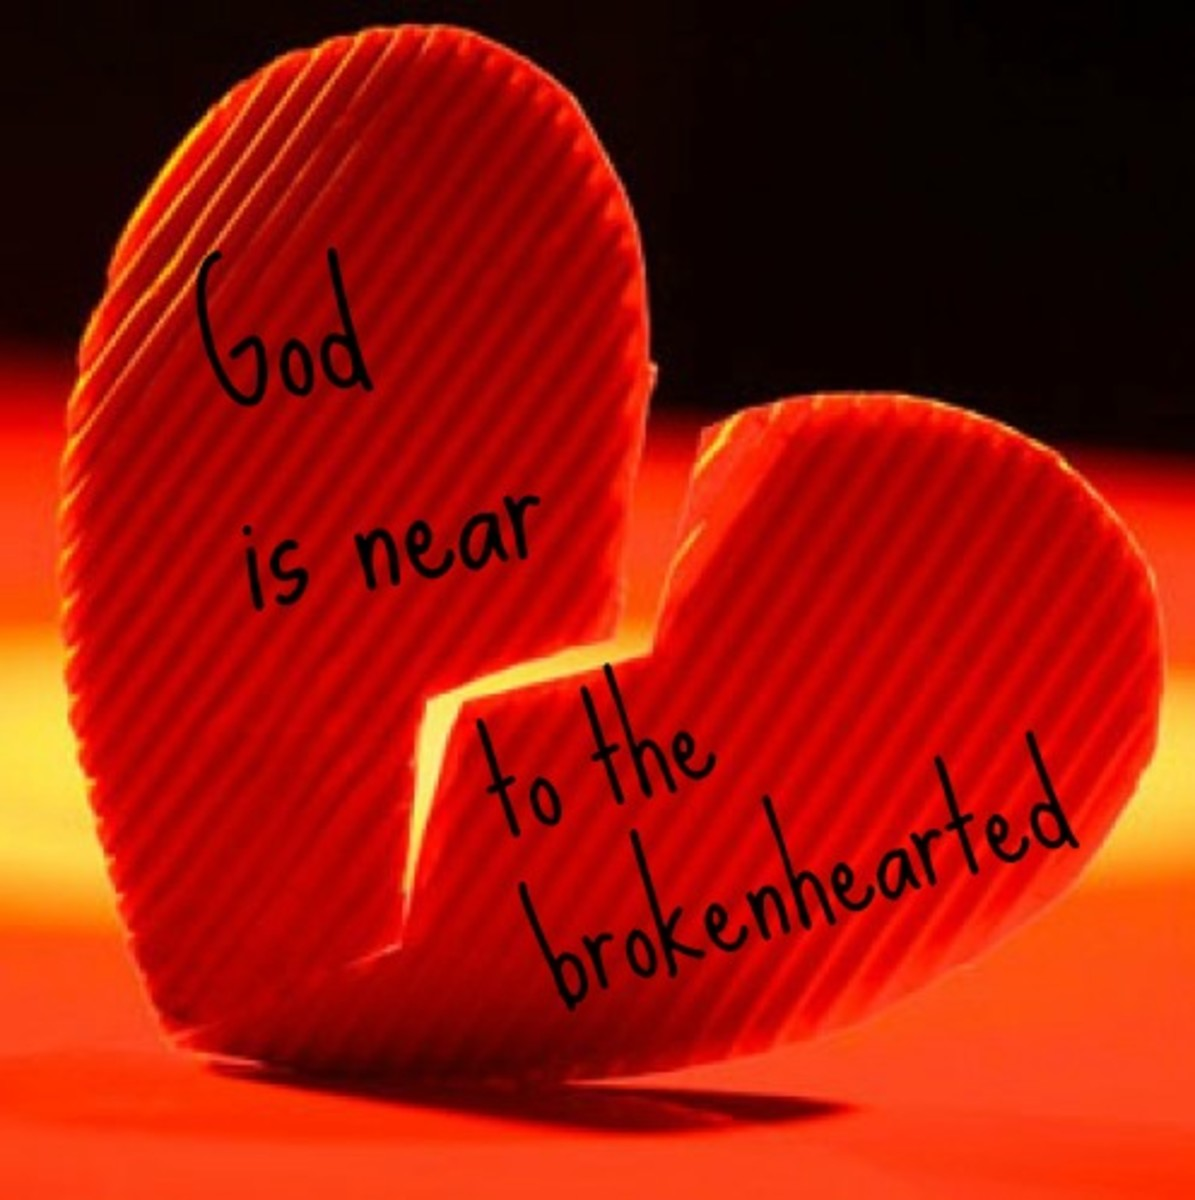 Broken Hearts Quotes from the Bible, Psalm 34:18 (verse 19 in Hebrew)